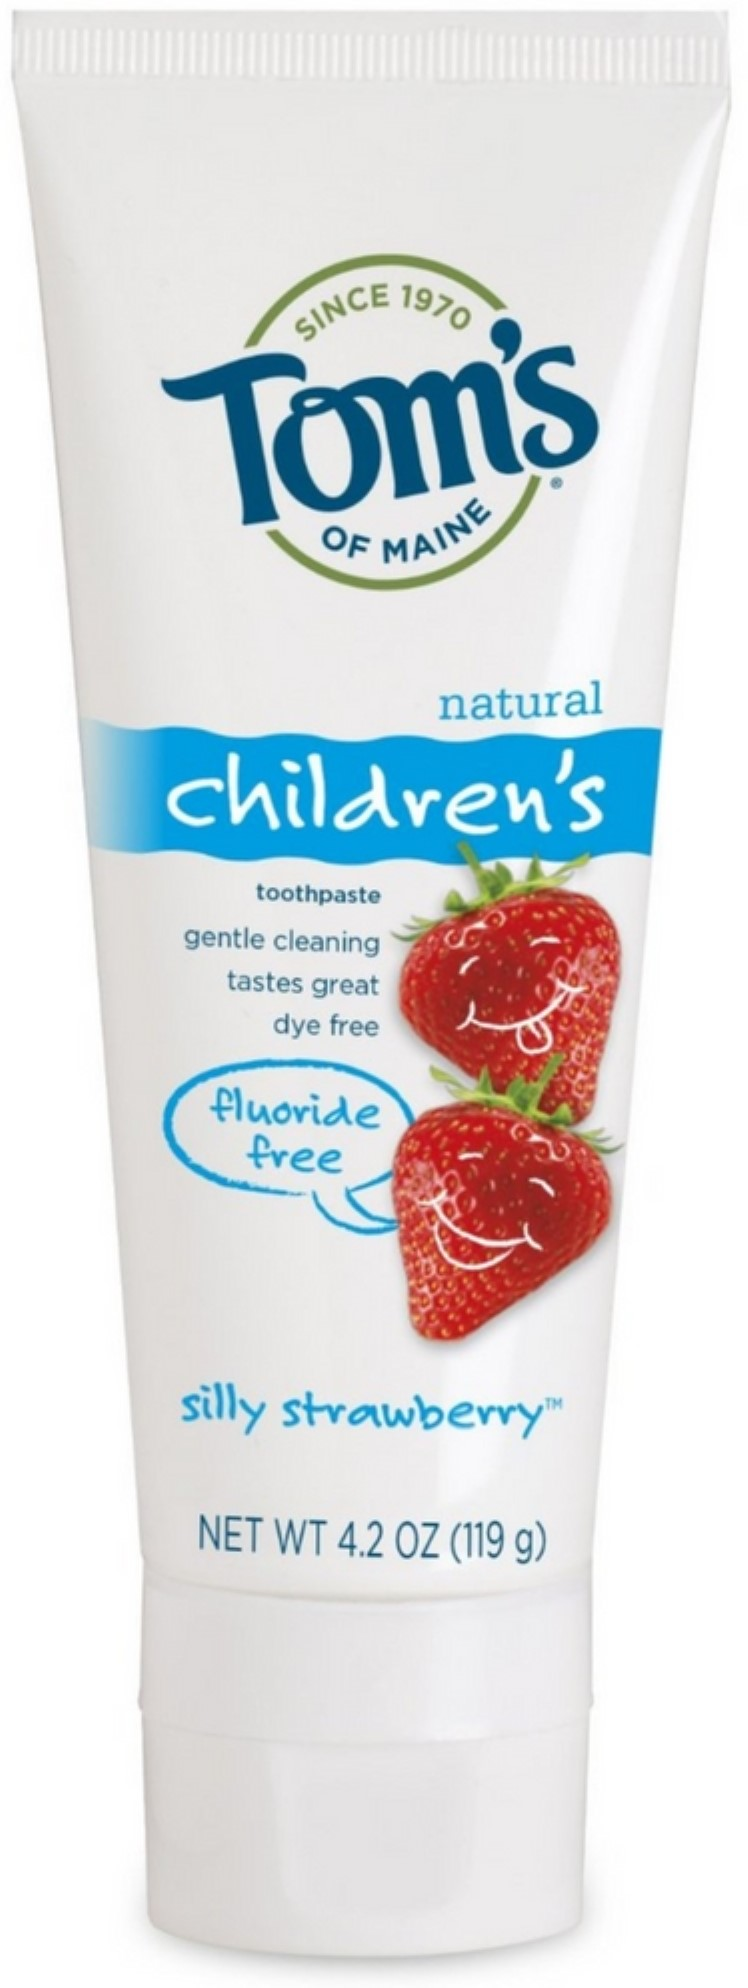 Toms of Maine Children Natural Fluoride Free Toothpaste Silly